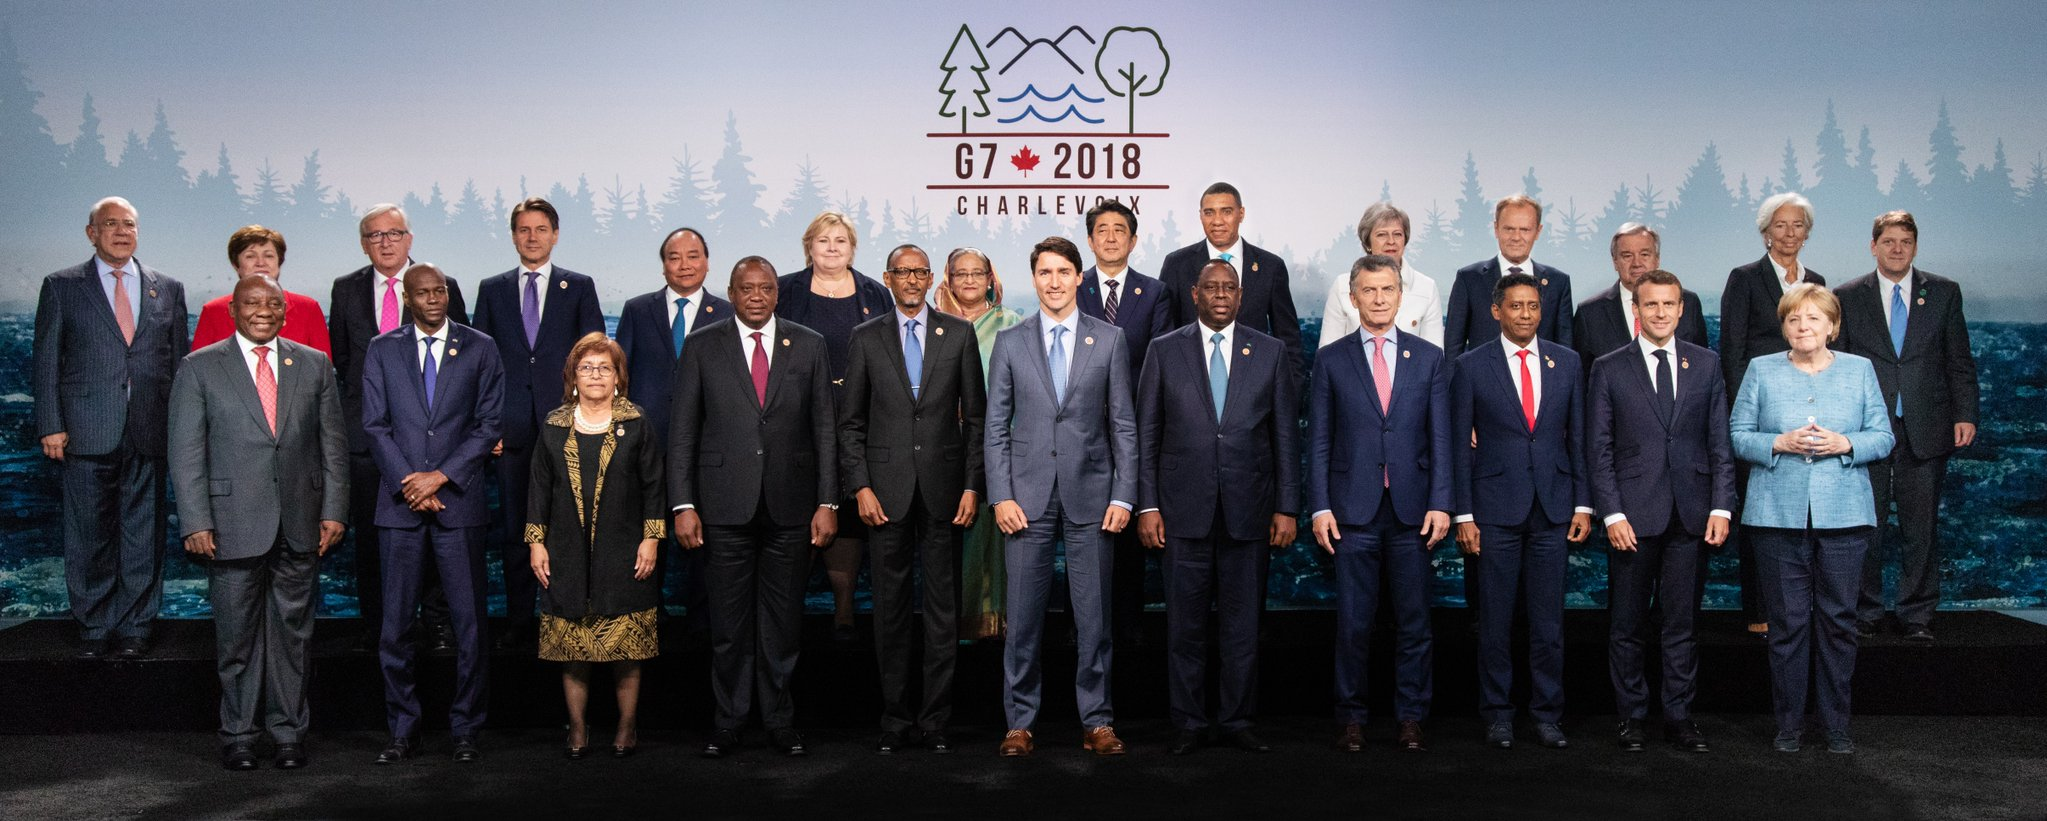 Eight ACP heads of government attended the G7 Summit in